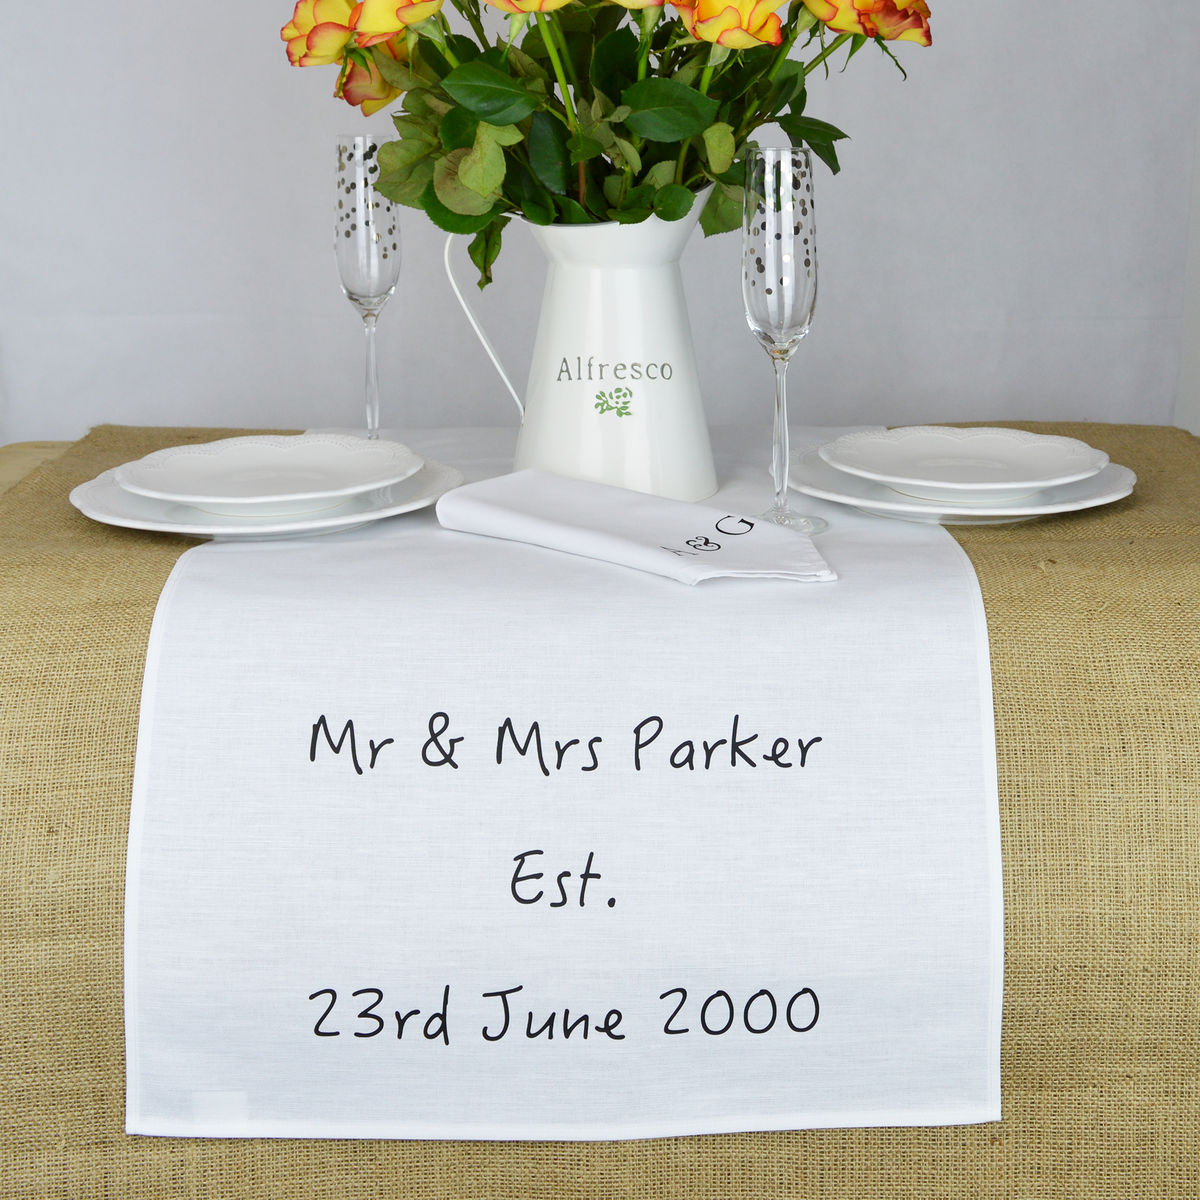 Personalised Wedding Table Runner - product image